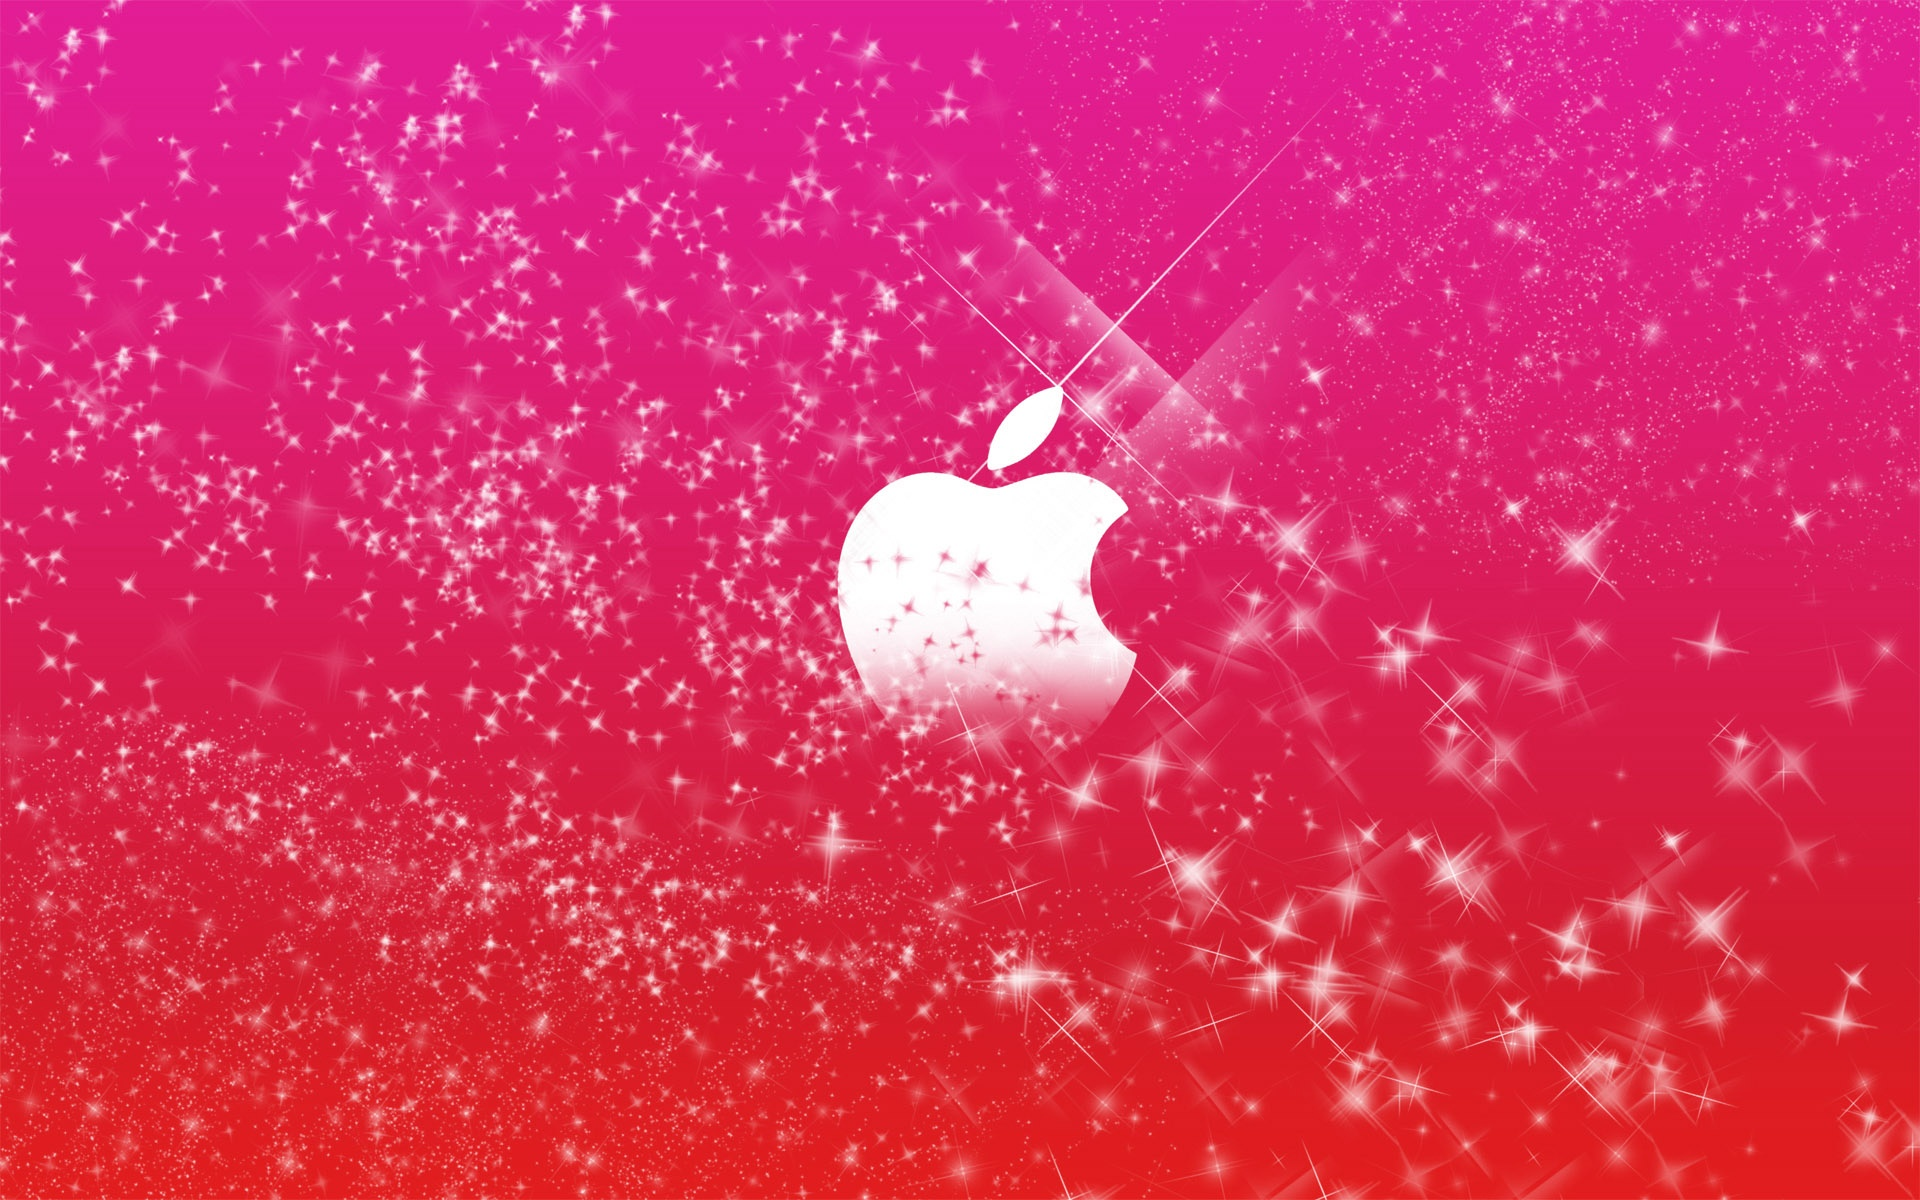 Glitters Logo Pink Apple Wallpaper Sparkle Wallpapers Pictures 1920x1200